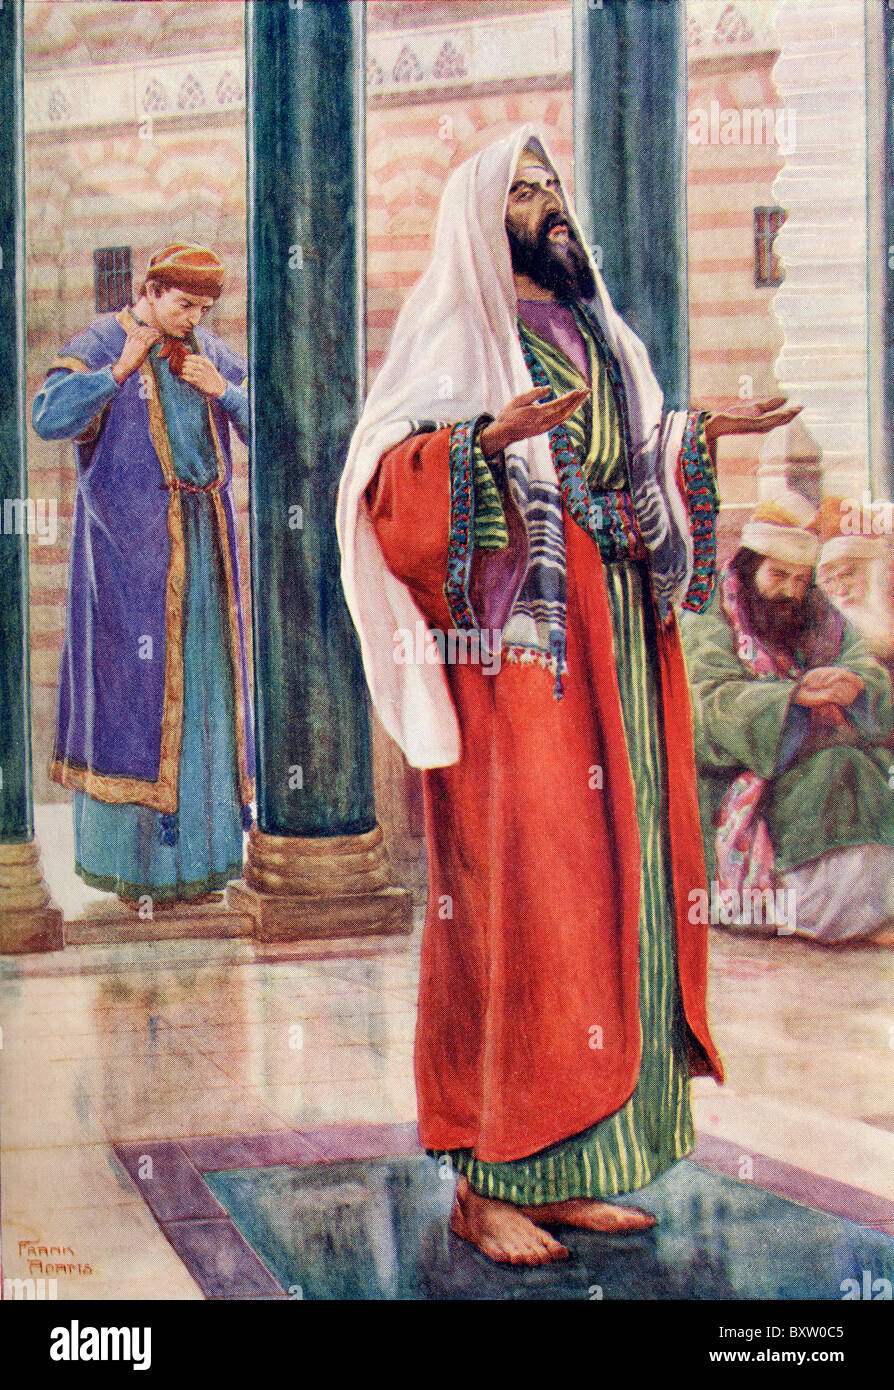 The parable of the Pharisee and the Publican. - Stock Image